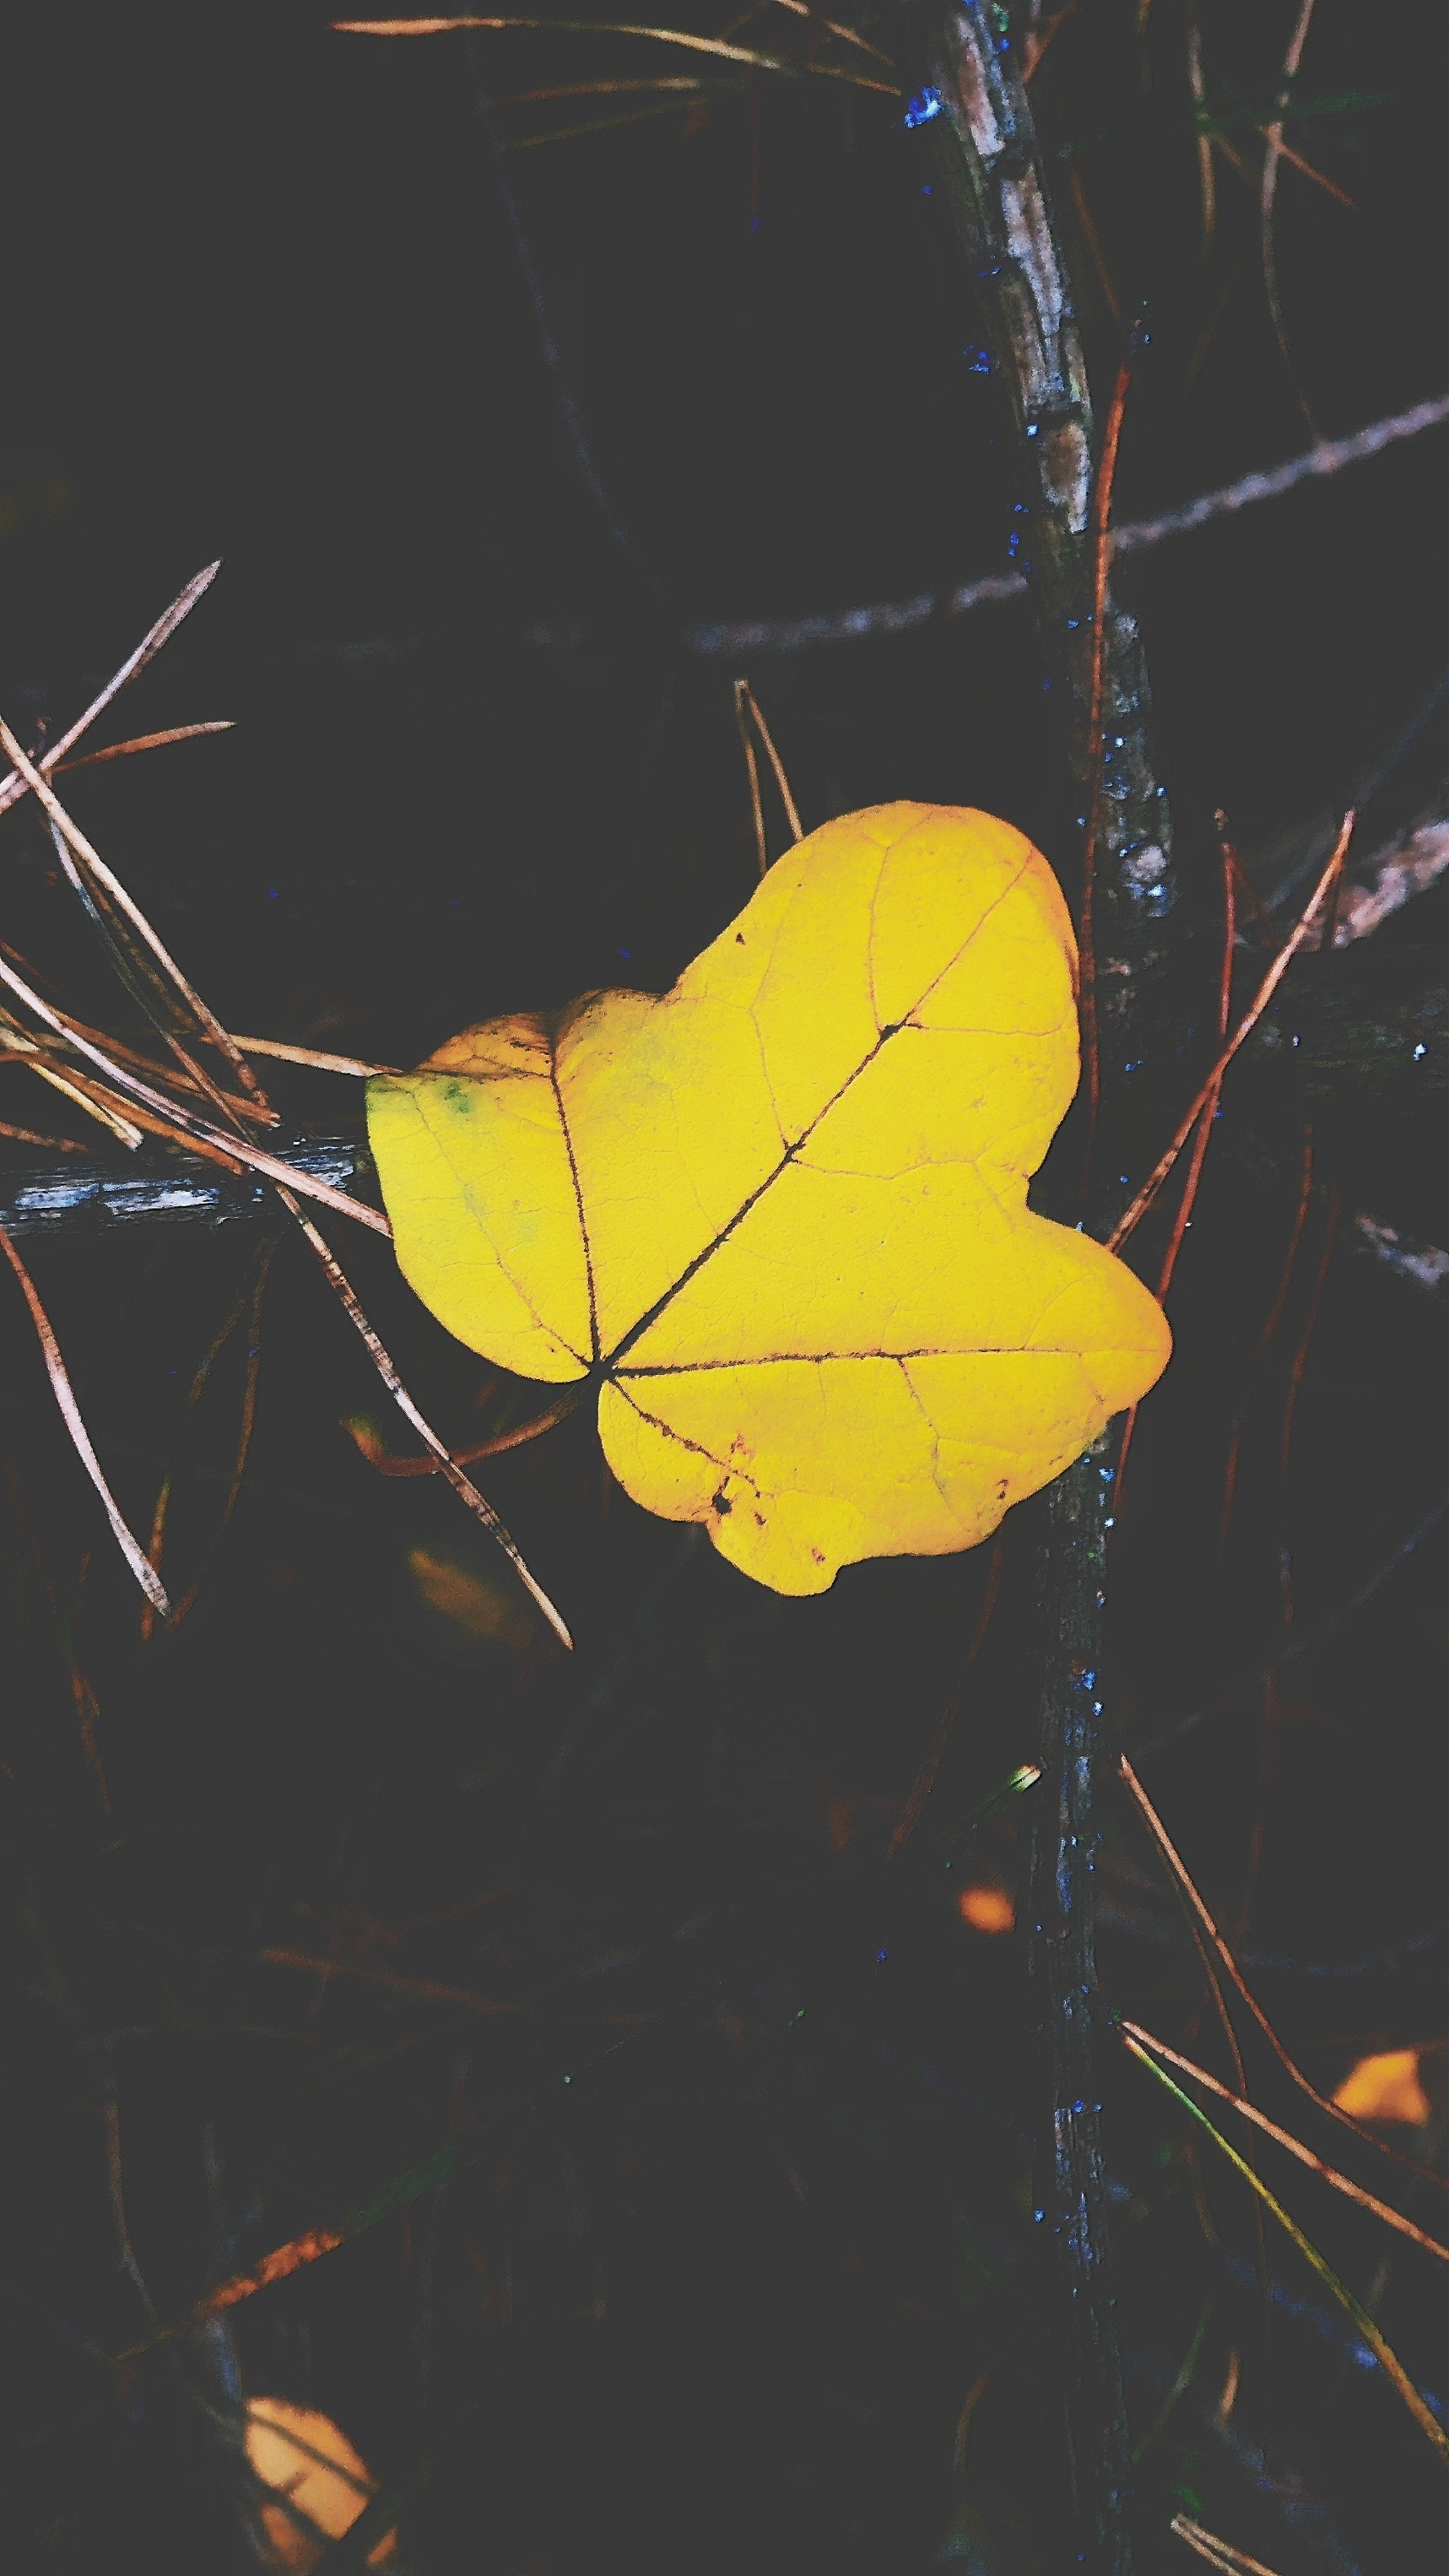 A yellow leaf.